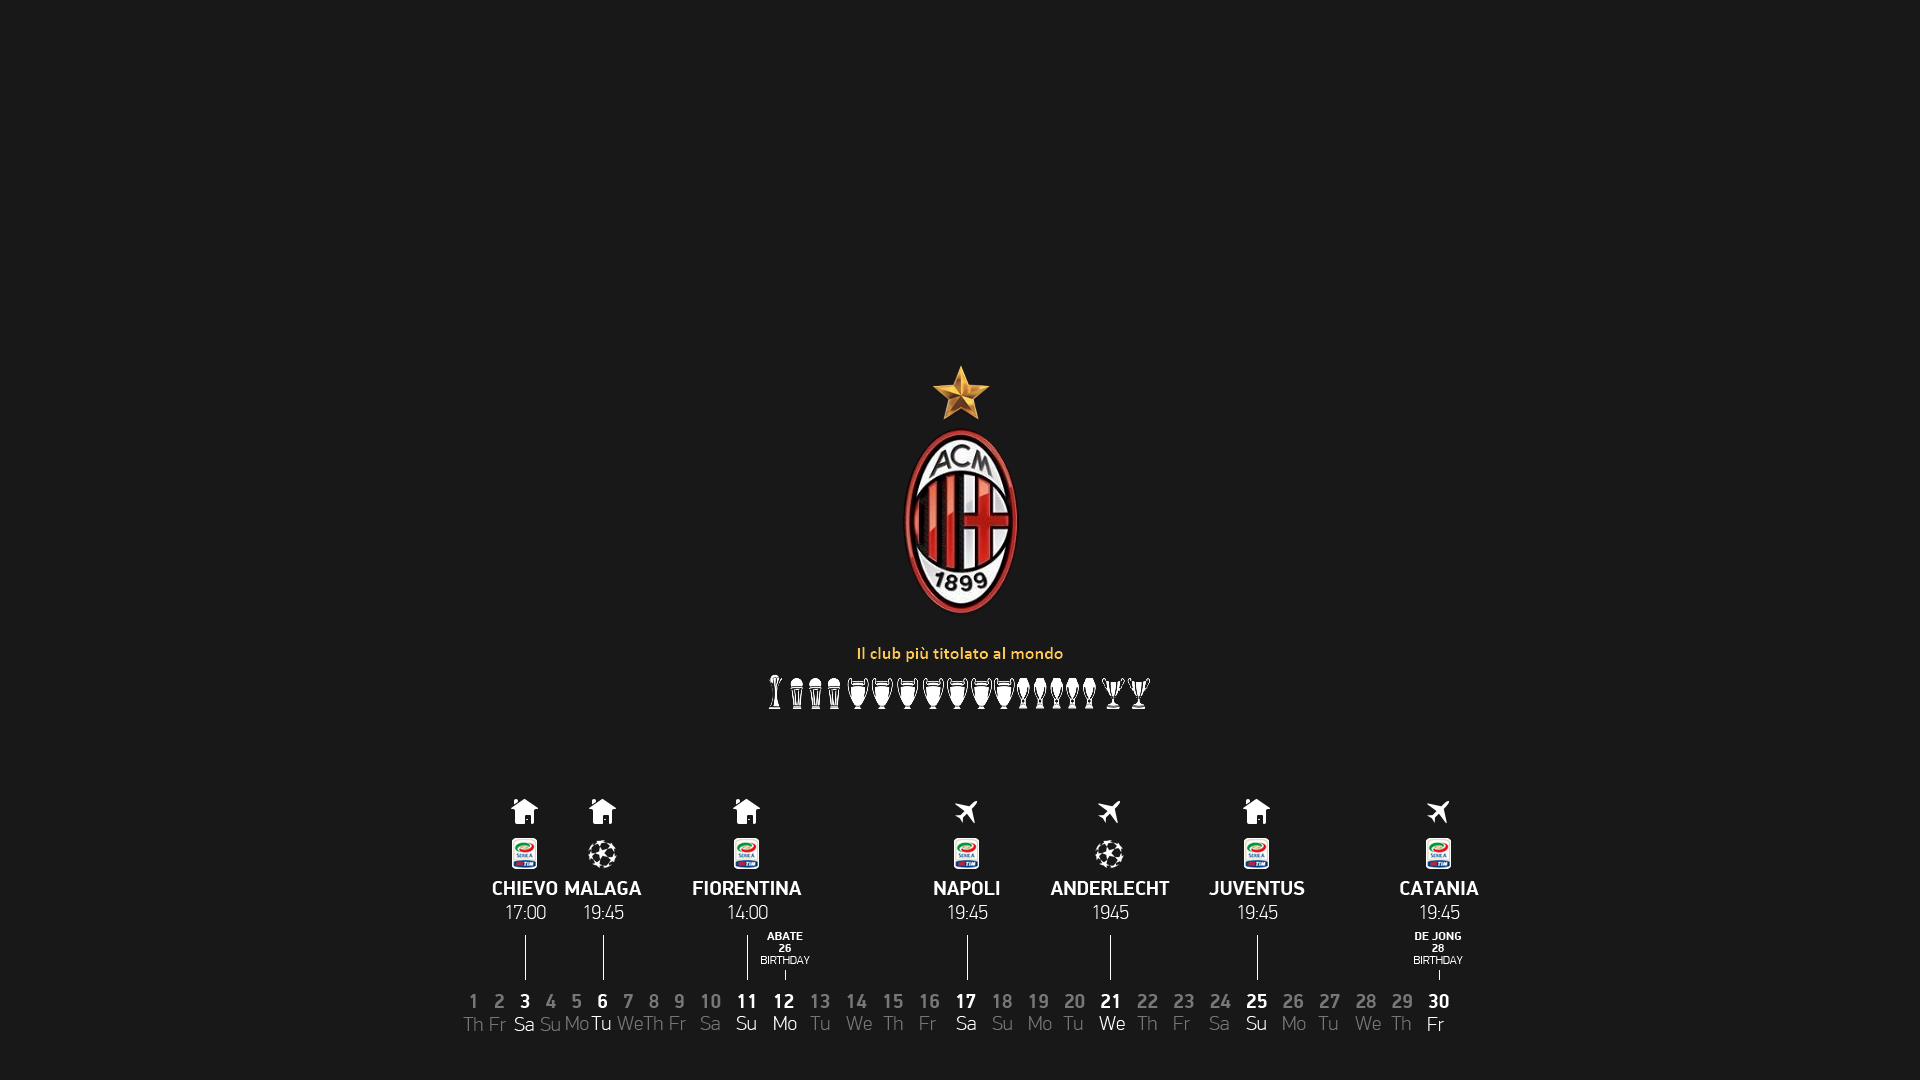 Hd wallpaper ac milan - Ac Milan Wallpaper 2015 Free Downloads